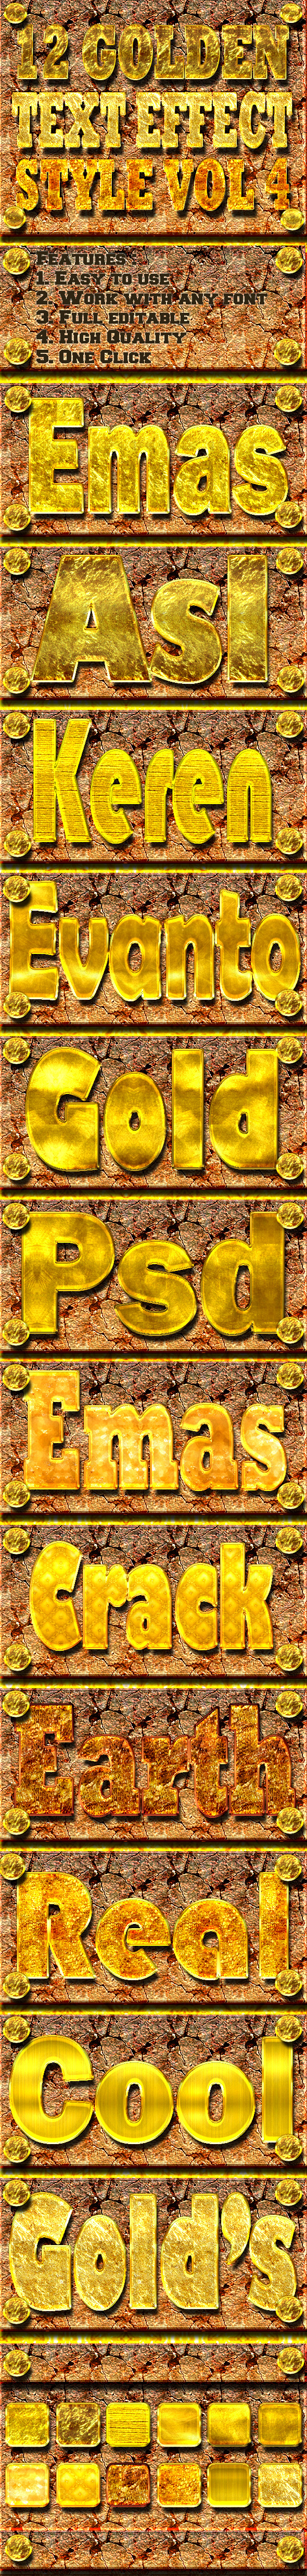 12 Golden Text Effect Style Vol 4 - Styles Photoshop